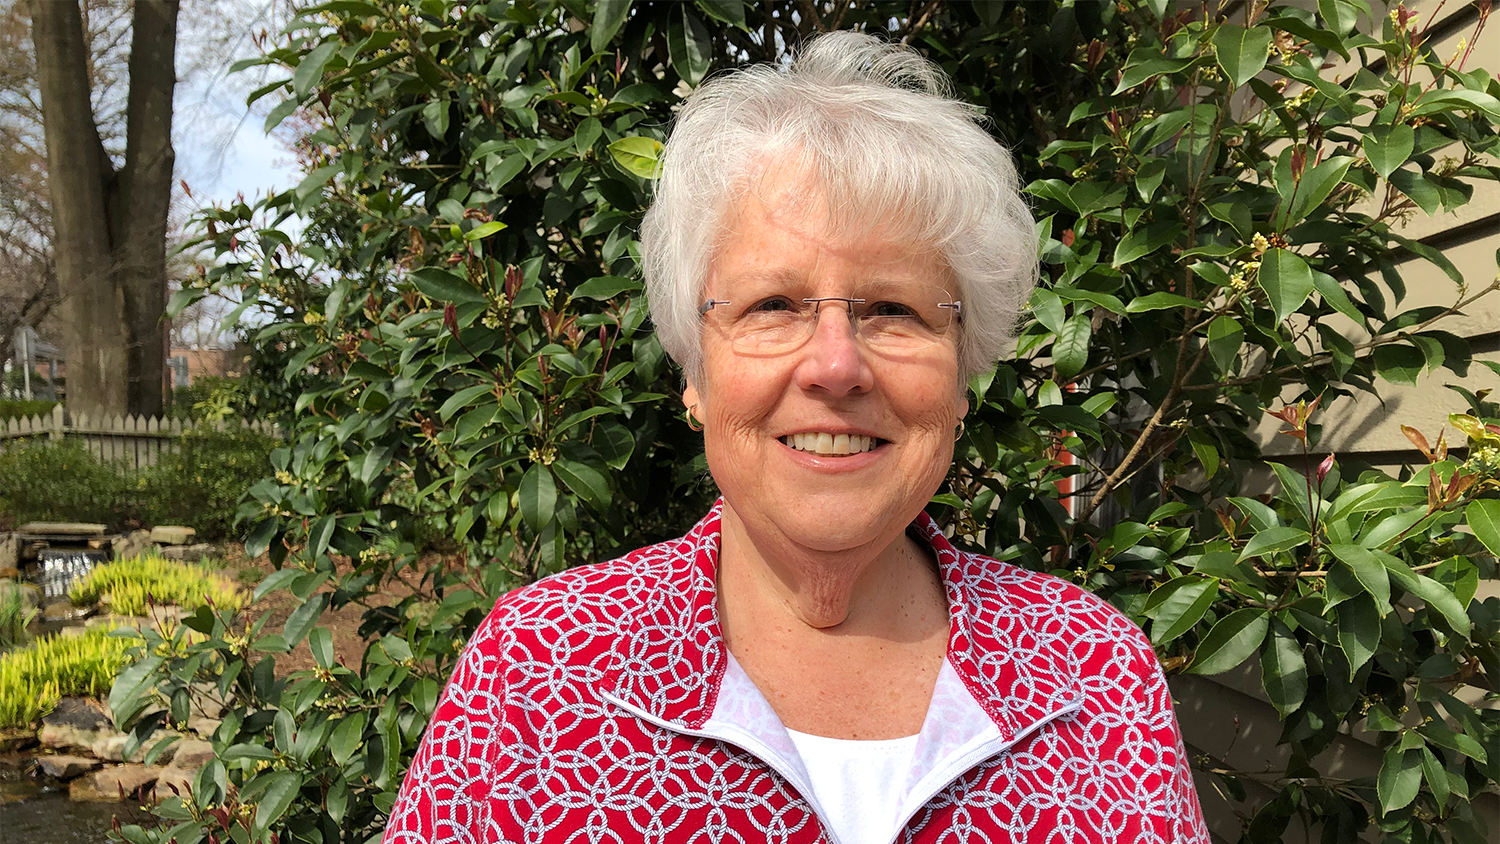 watzin poses in front of yellow flowers - Women in Natural Resources: Forestry Professor Mary Watzin - College of Natural Resources News NC State University